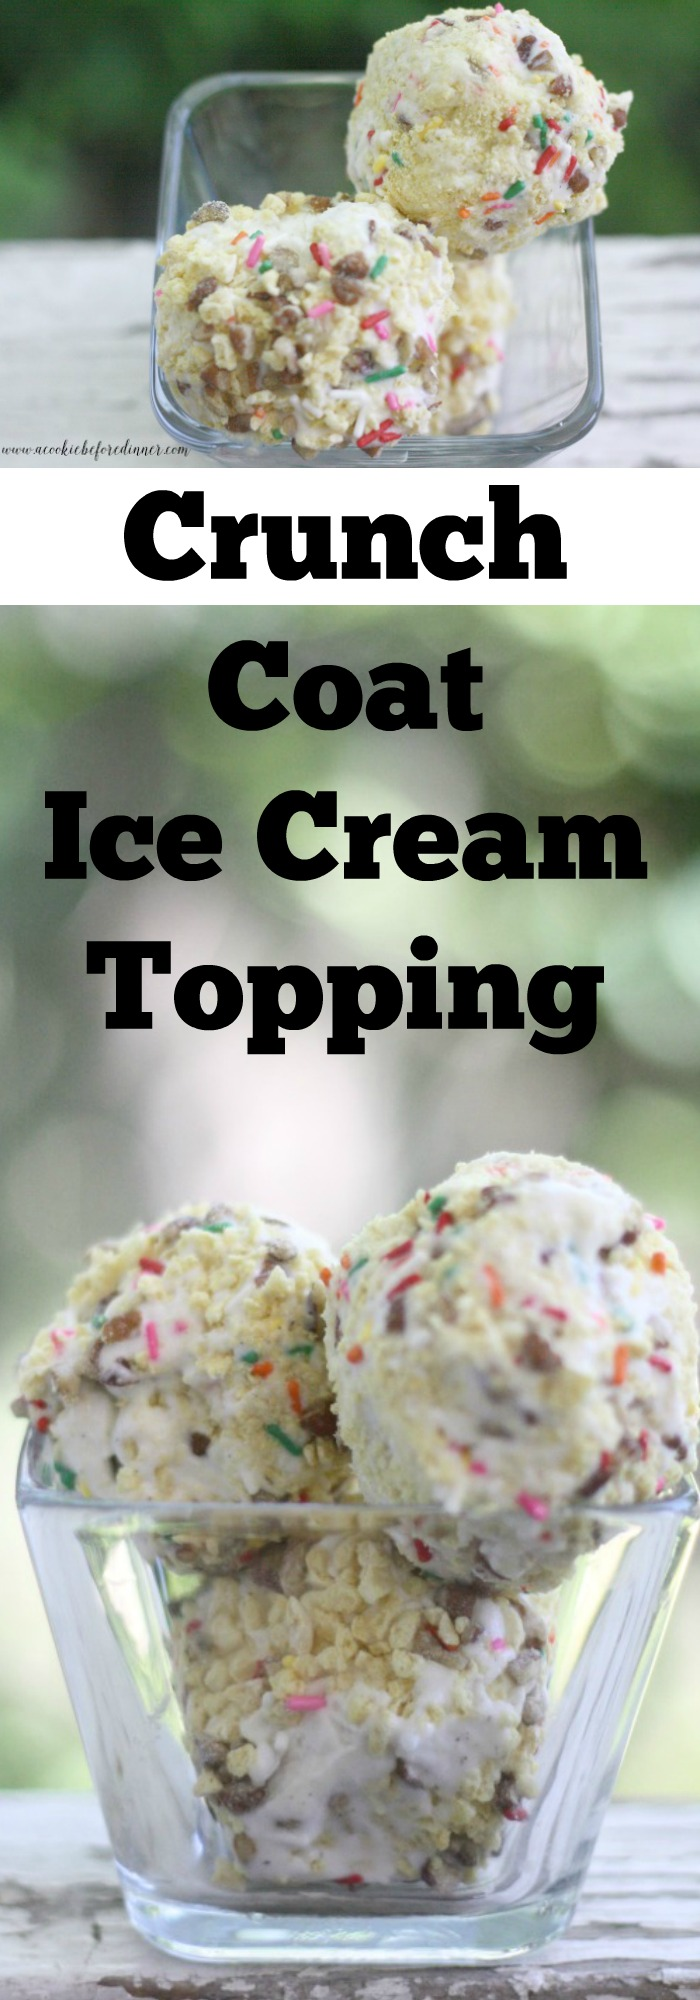 Crunch Coat Ice Cream Topping Collage